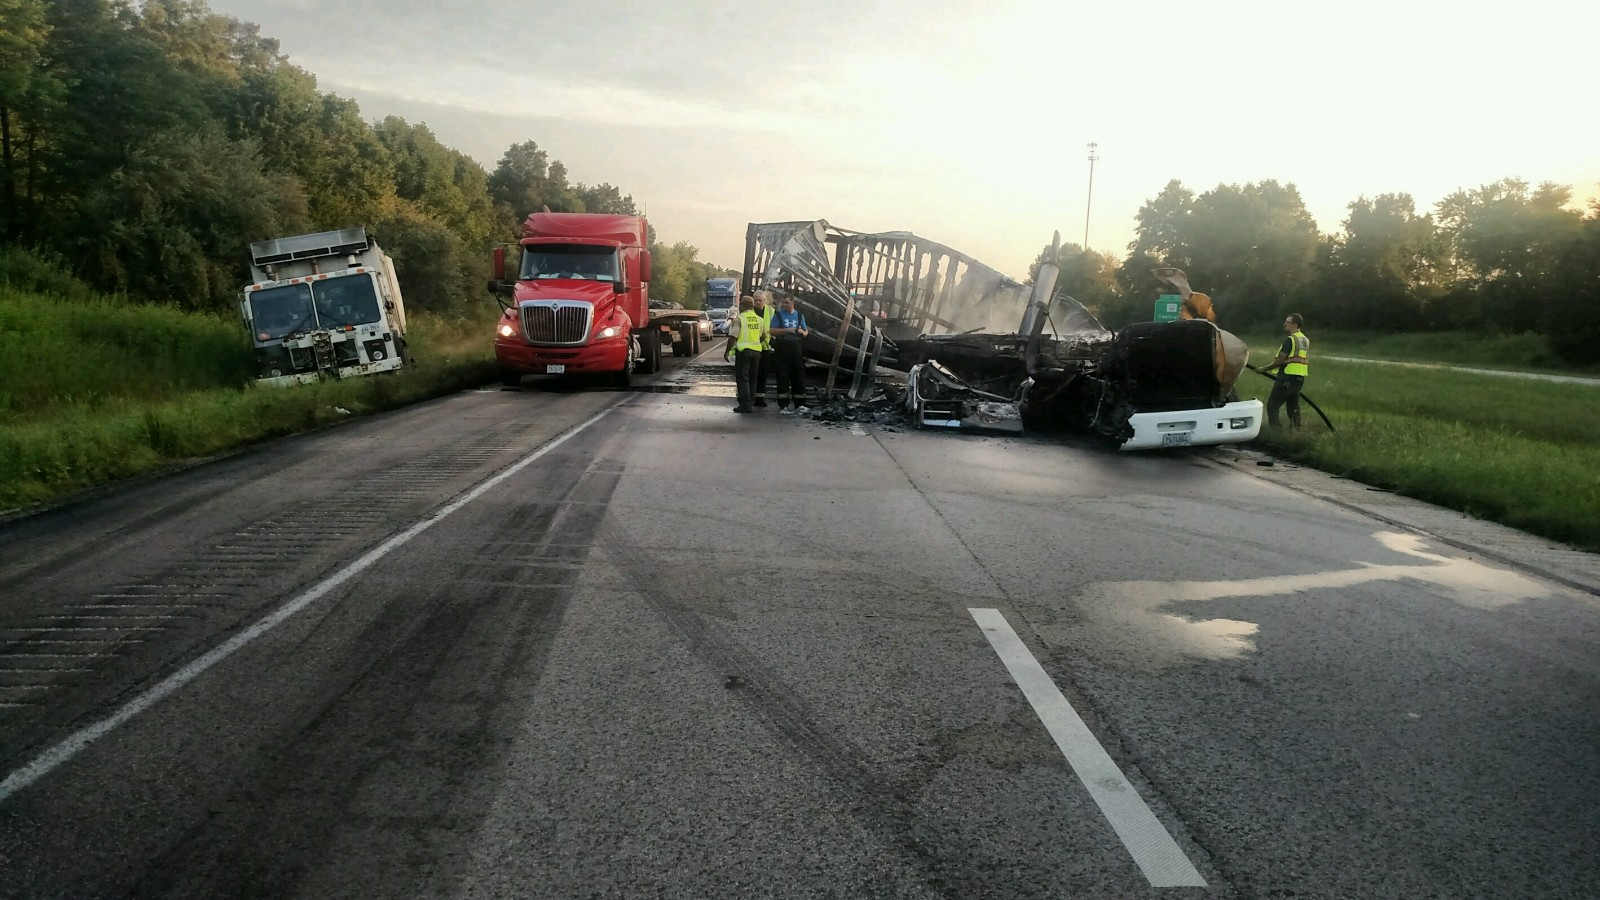 Wreckage from and earlier crash on I-57. Use caution when passing on the highway!